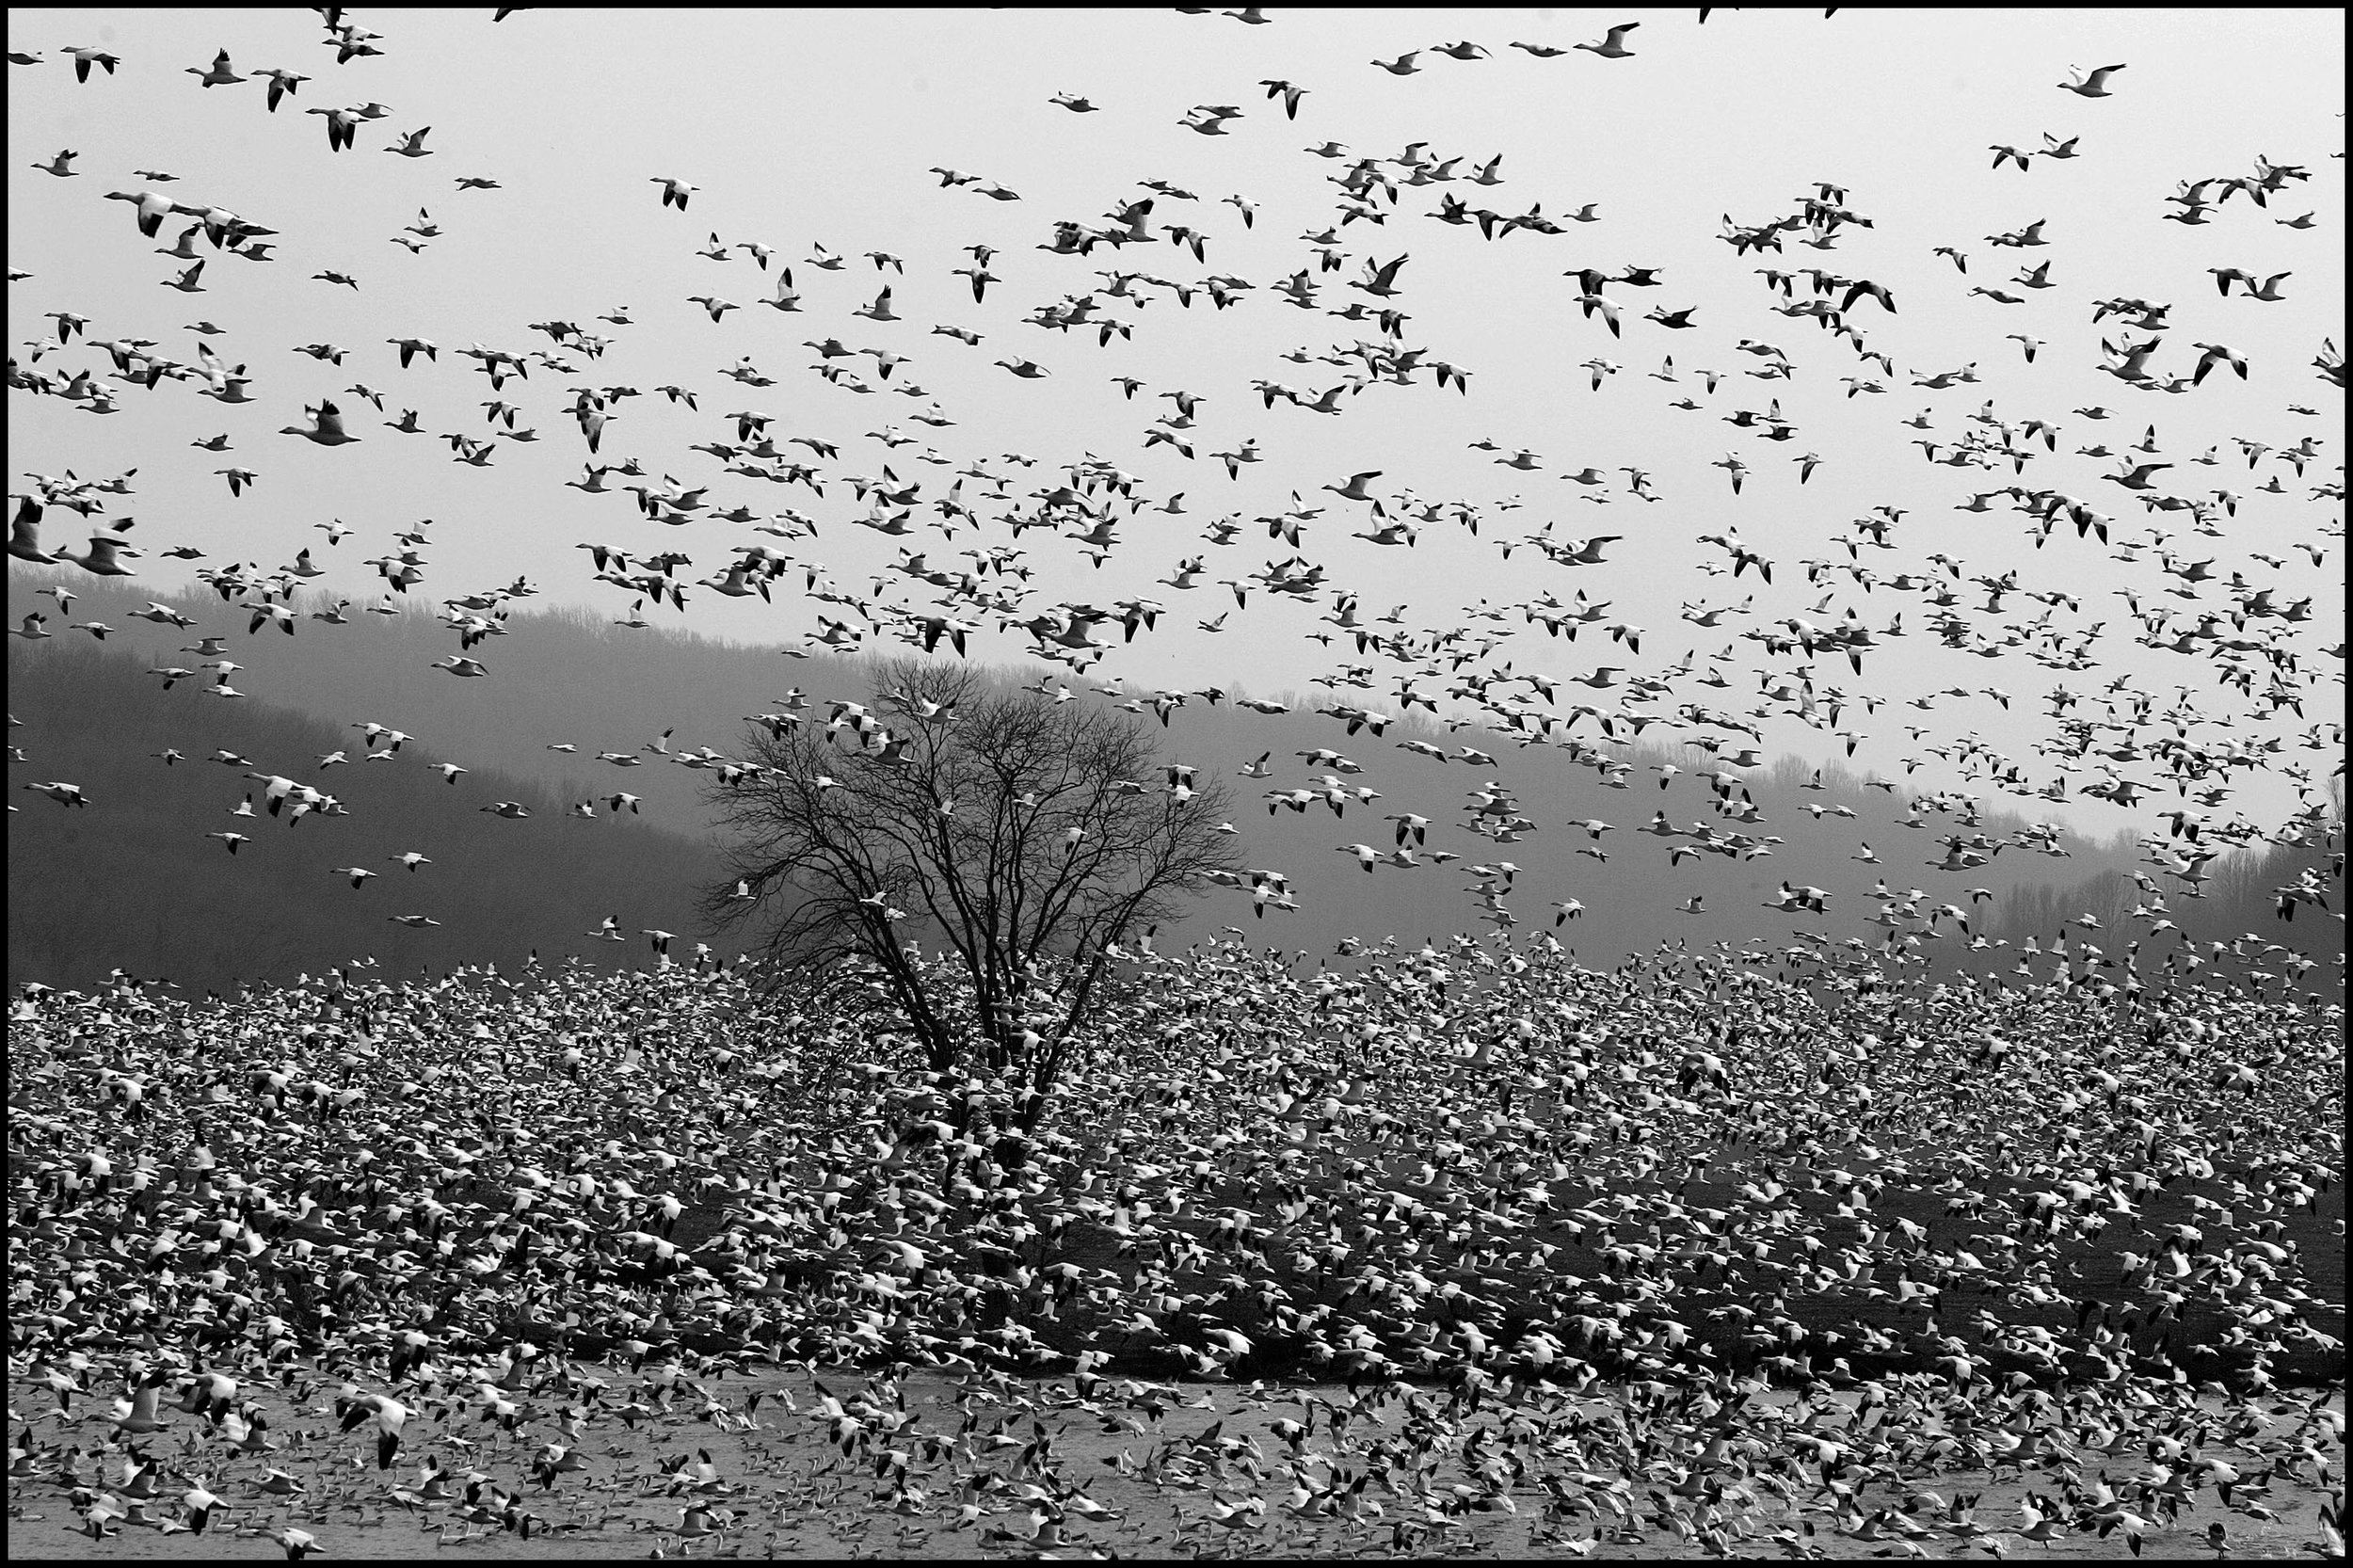 Migrating snow geese - Middle Creek Wildlife Management Area in Kleinfeltersville, PA.